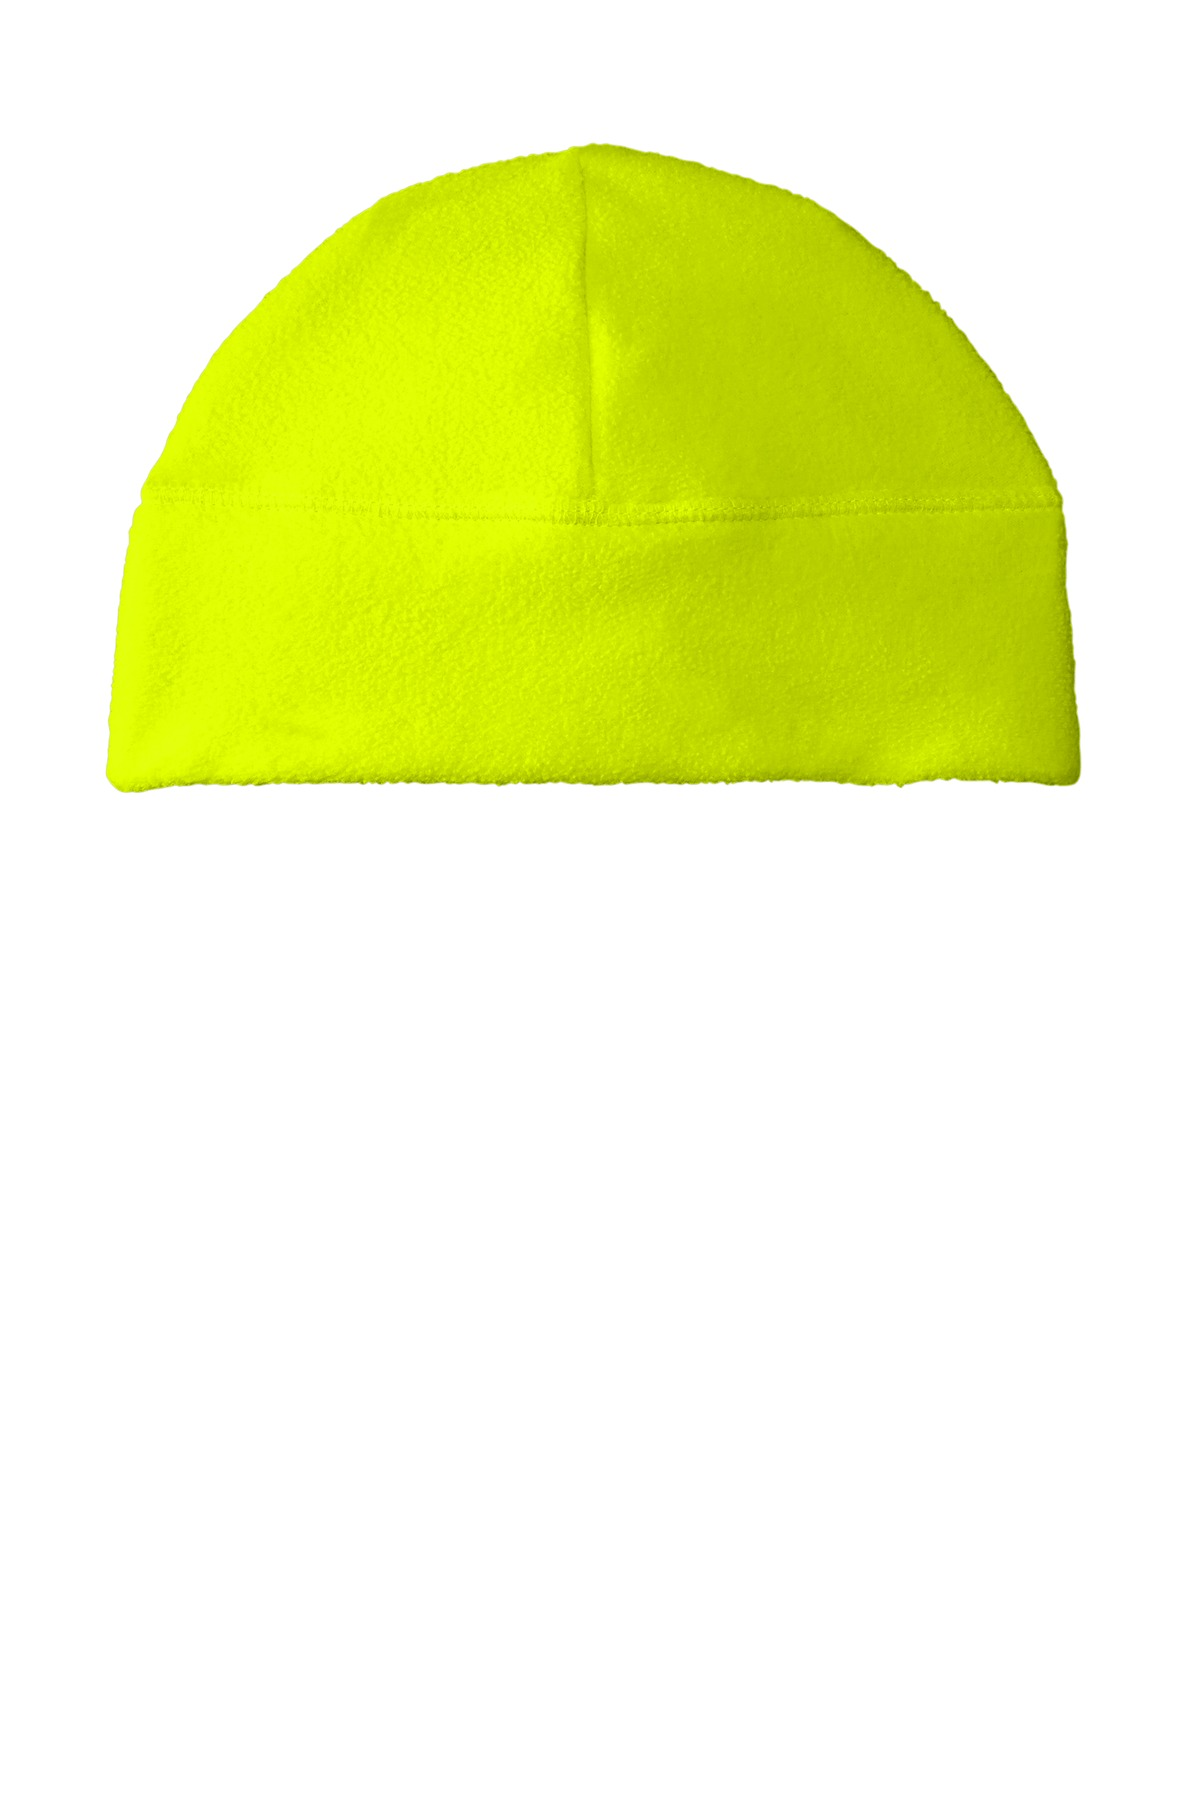 CornerStone  ®  Enhanced Visibility Fleece Beanie CS803 - Safety Yellow